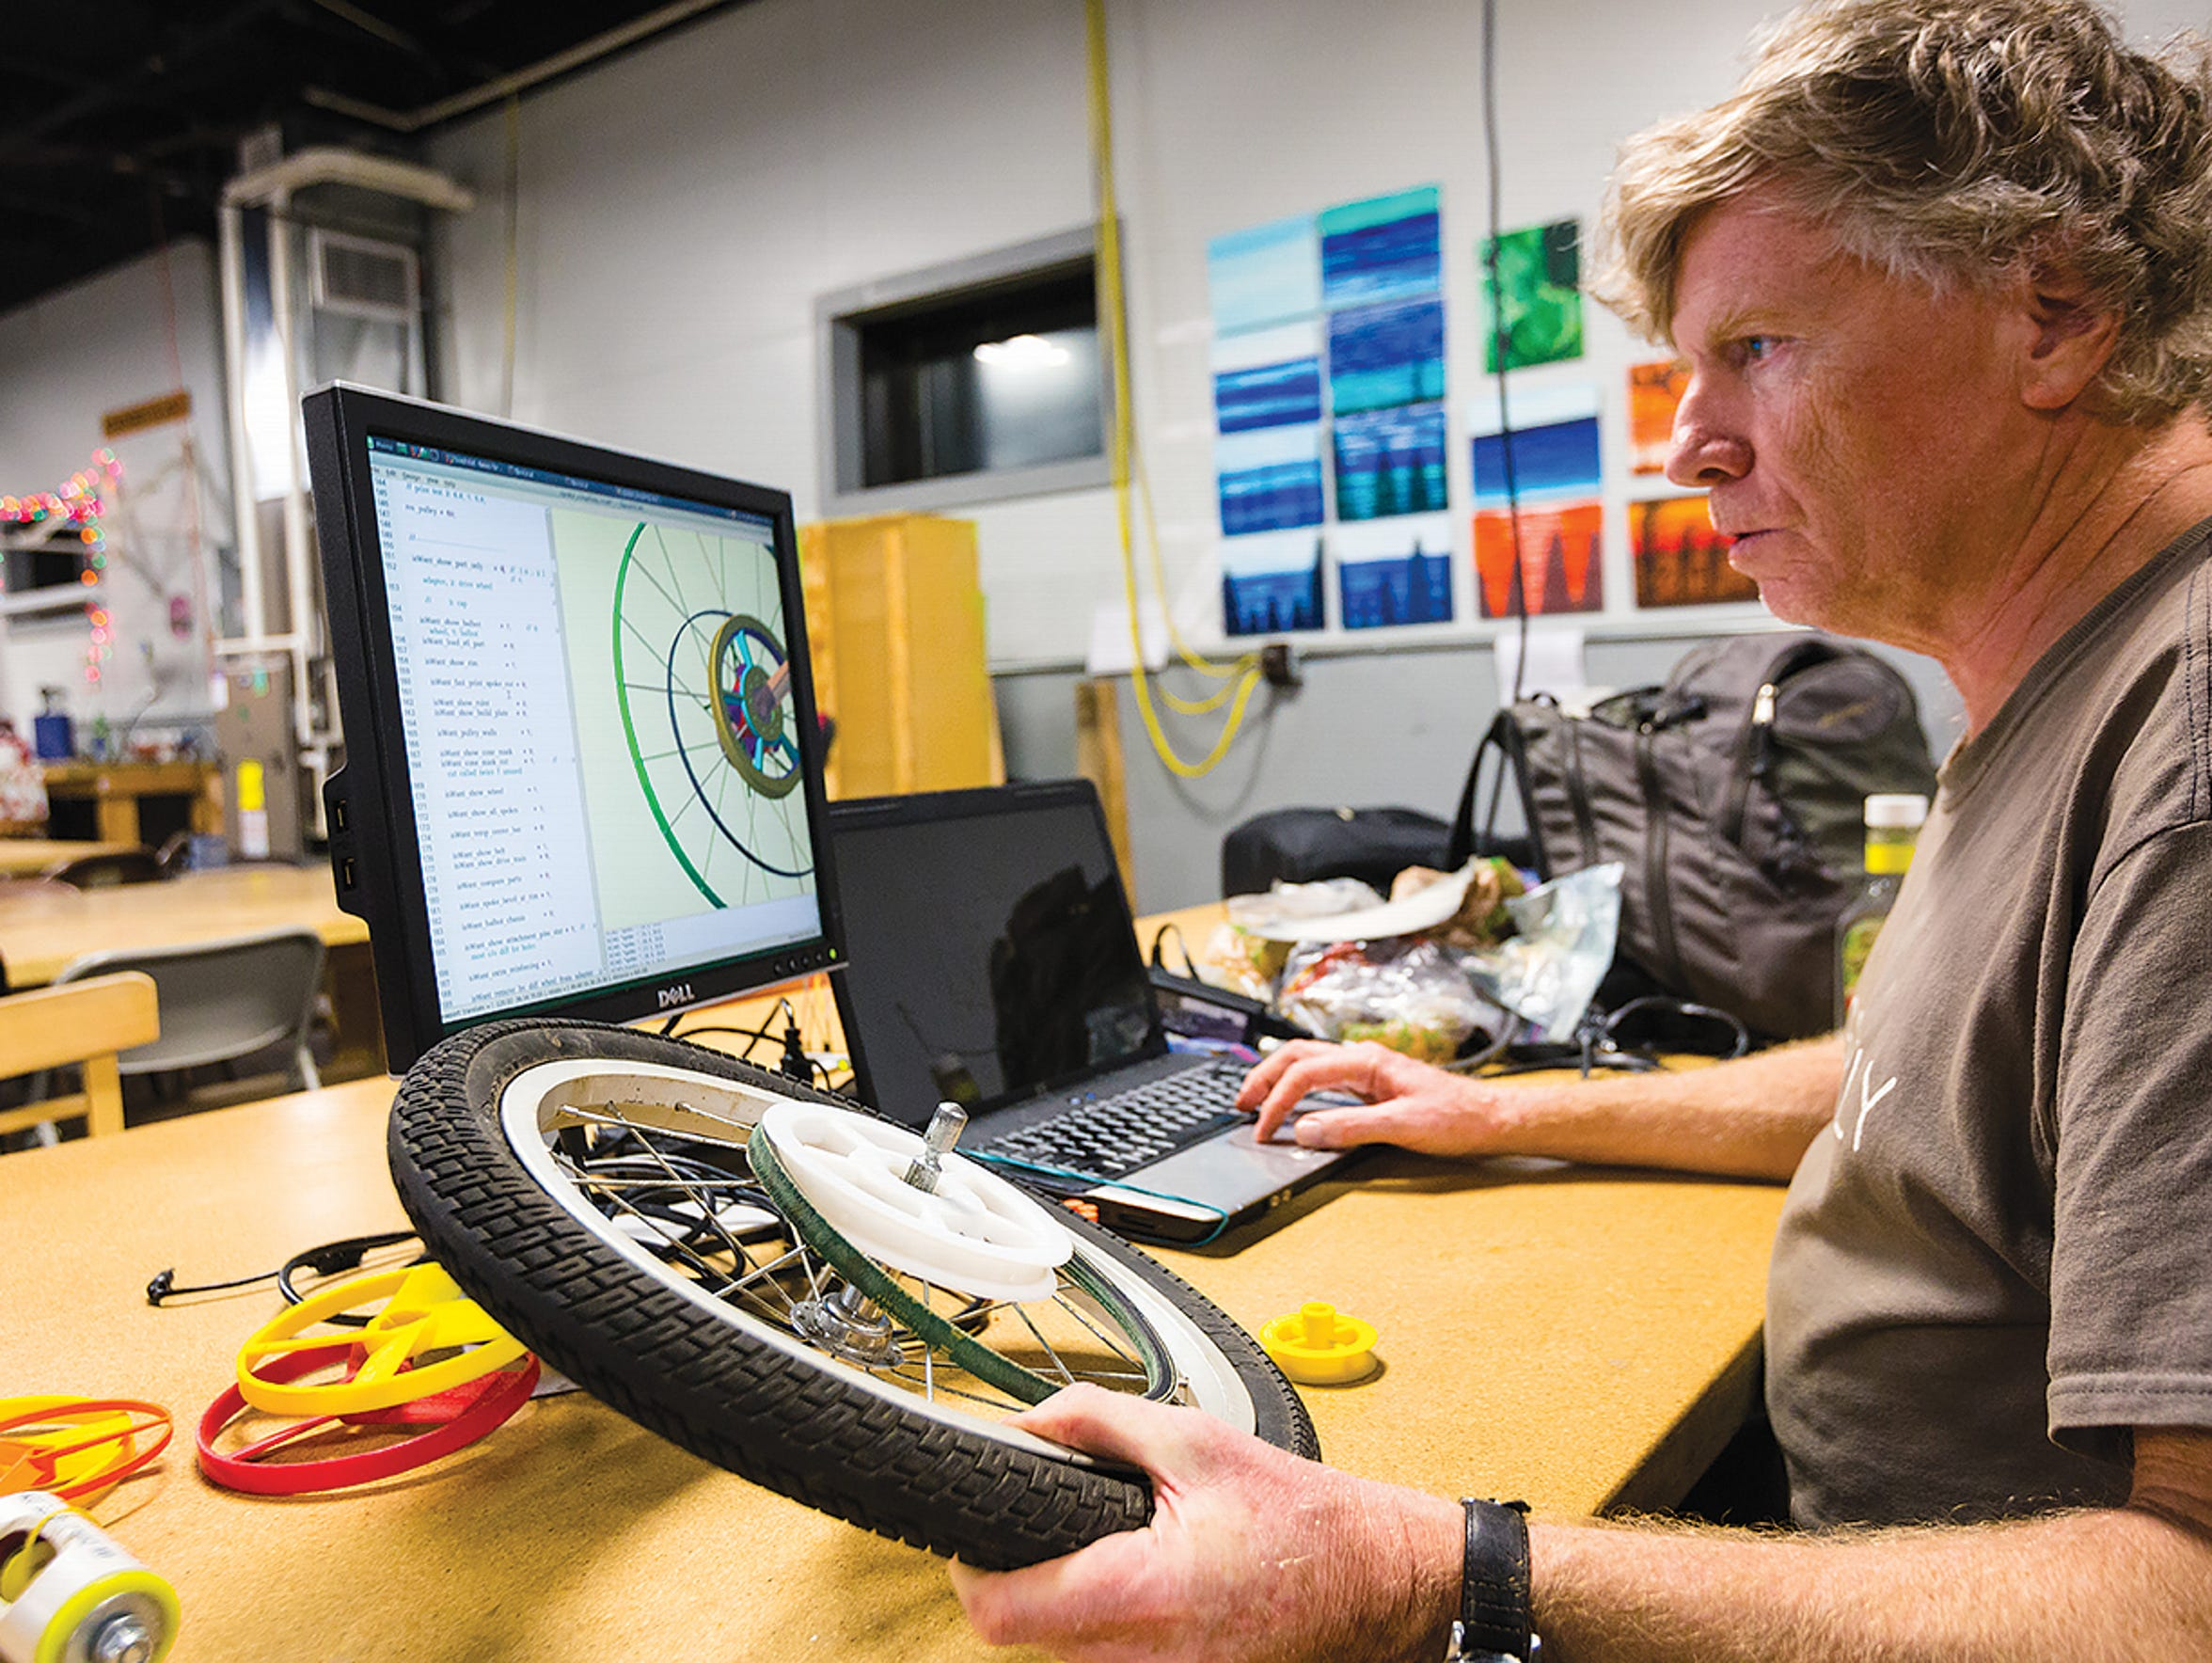 At Rochester Makerspace, Paul Flavin is designing a